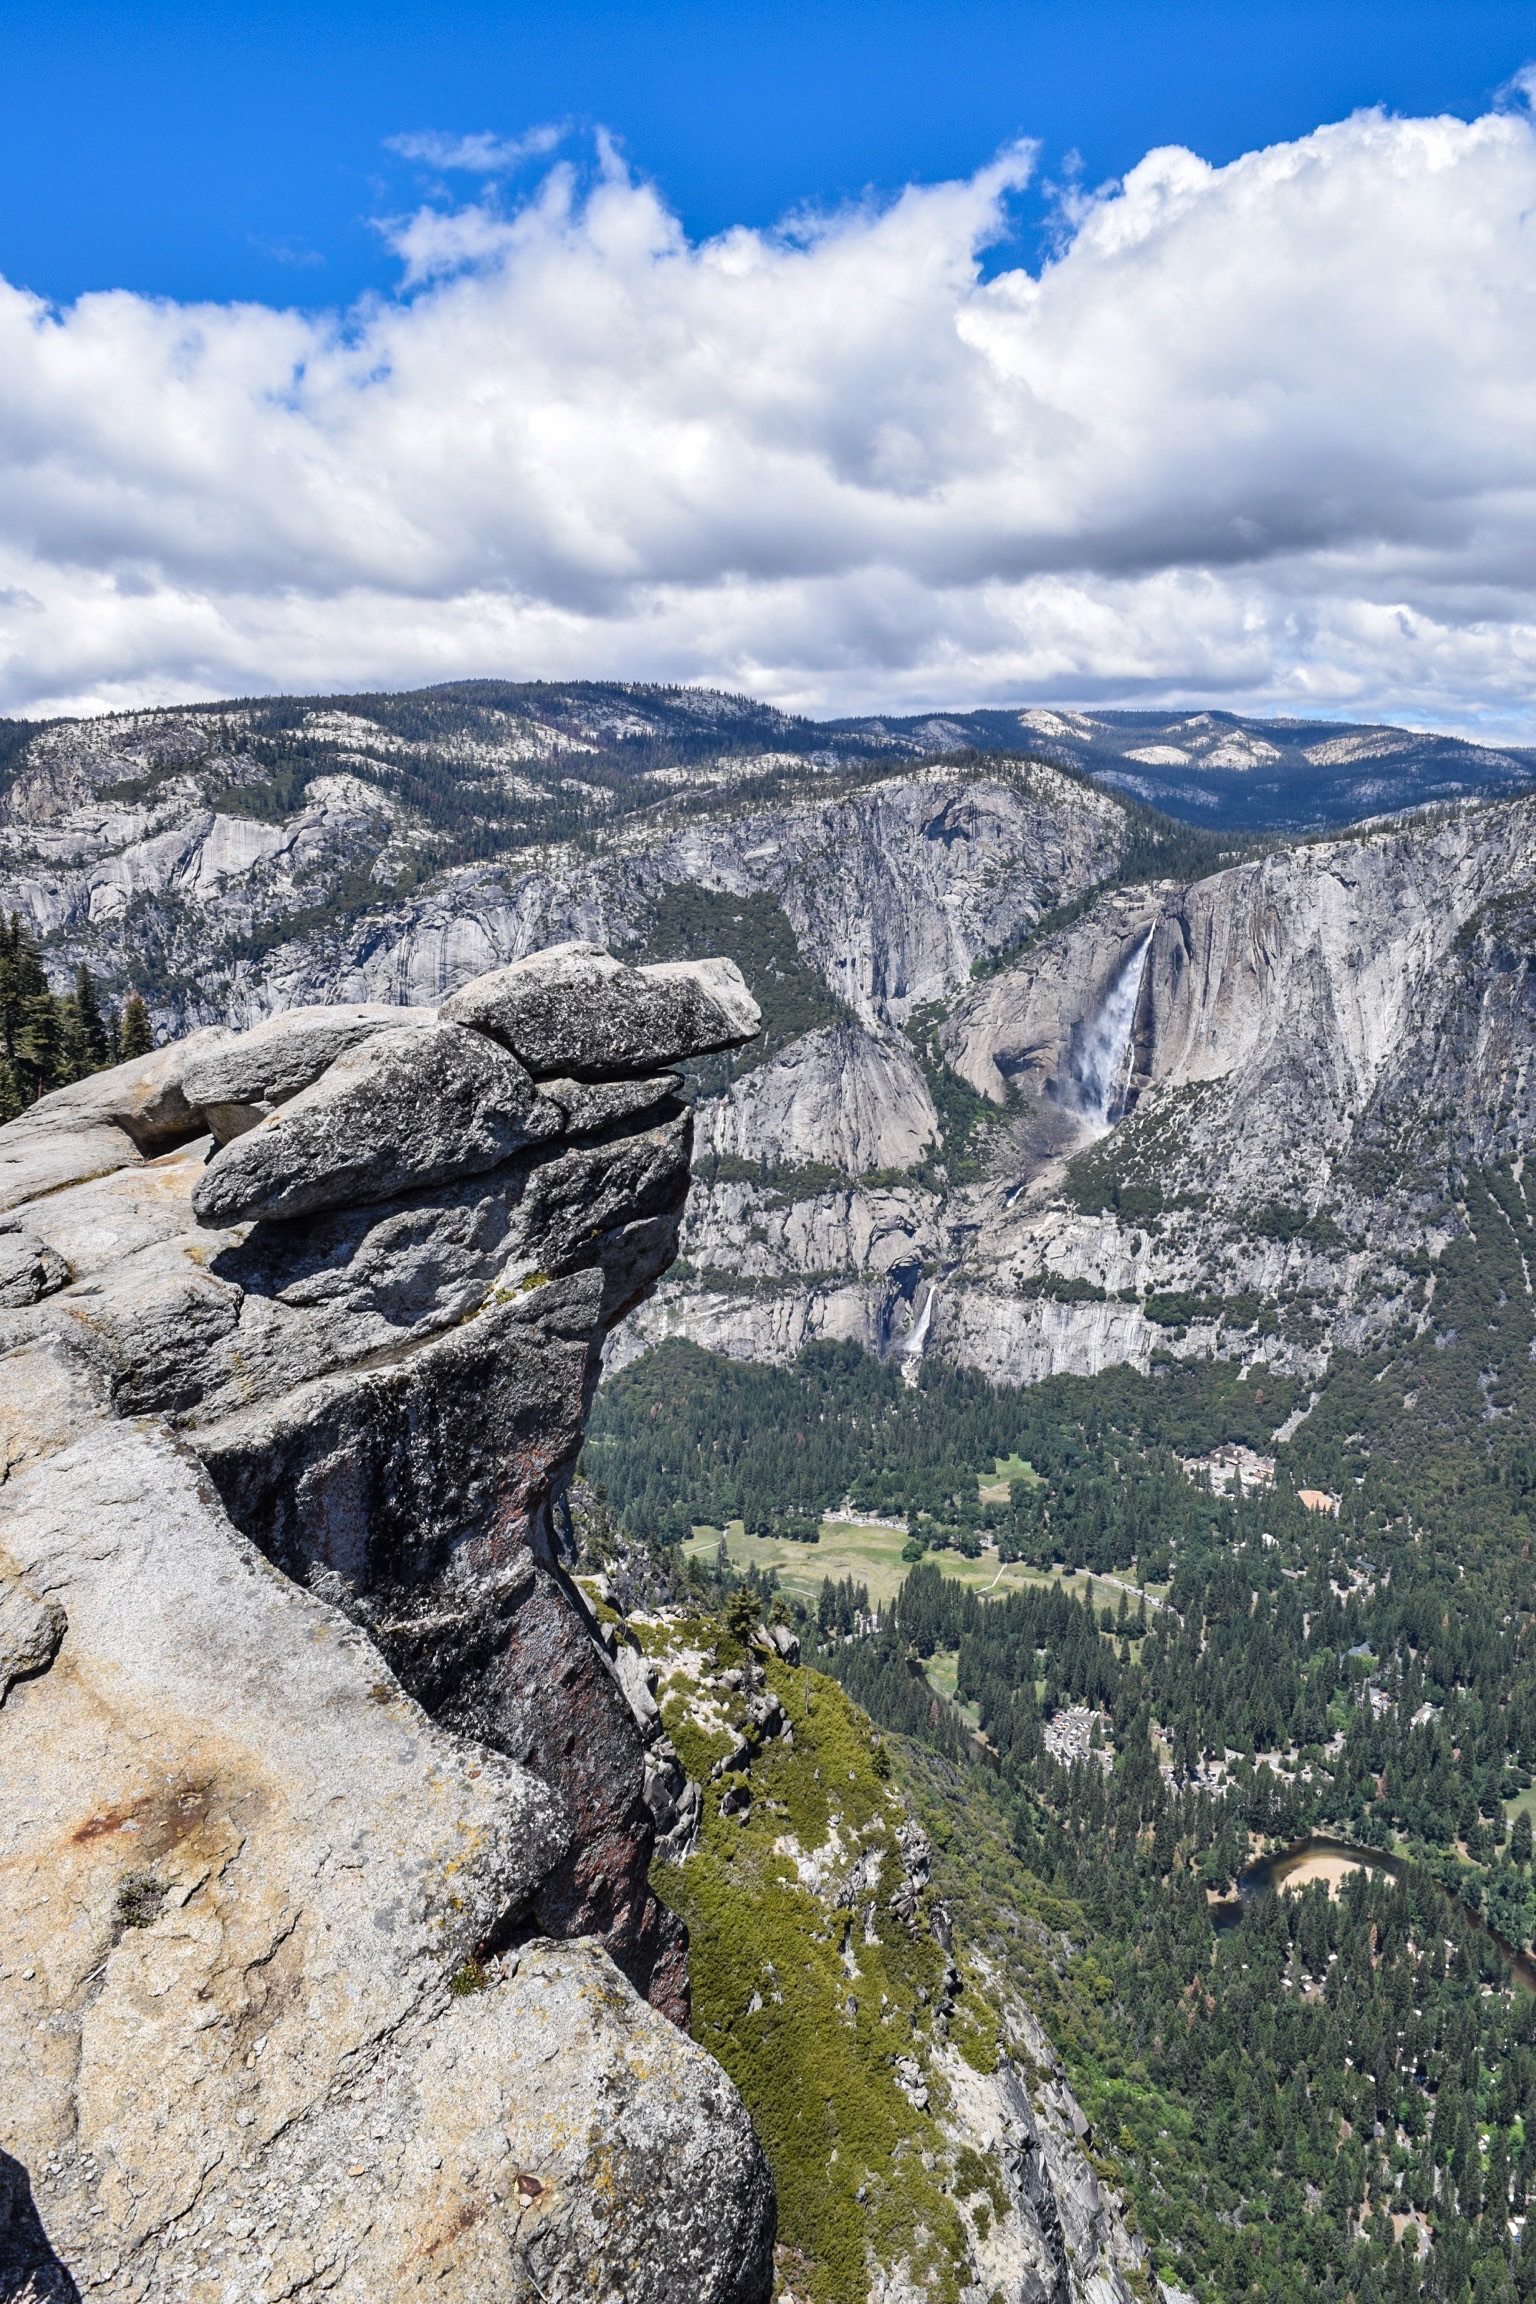 View of the valley and Yosemite Falls.